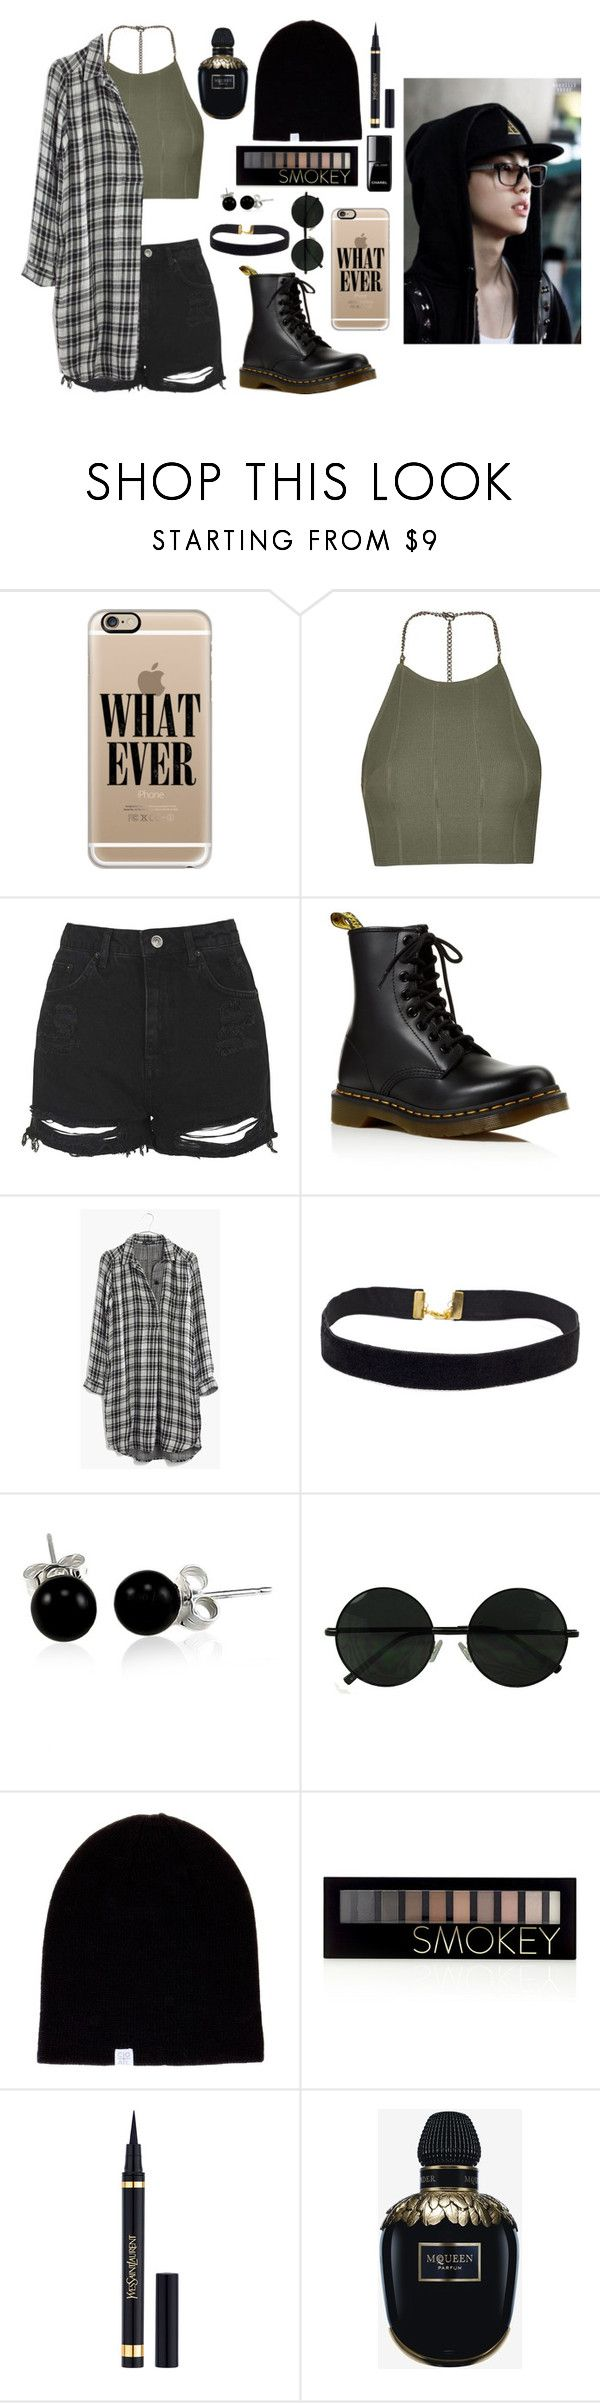 """Day out with Mark (grunge style)"" by got7outfits ❤ liked on Polyvore featuring Casetify, Topshop, Dr. Martens, Madewell, Bling Jewelry, Coal, Forever 21, Yves Saint Laurent and Alexander McQueen"